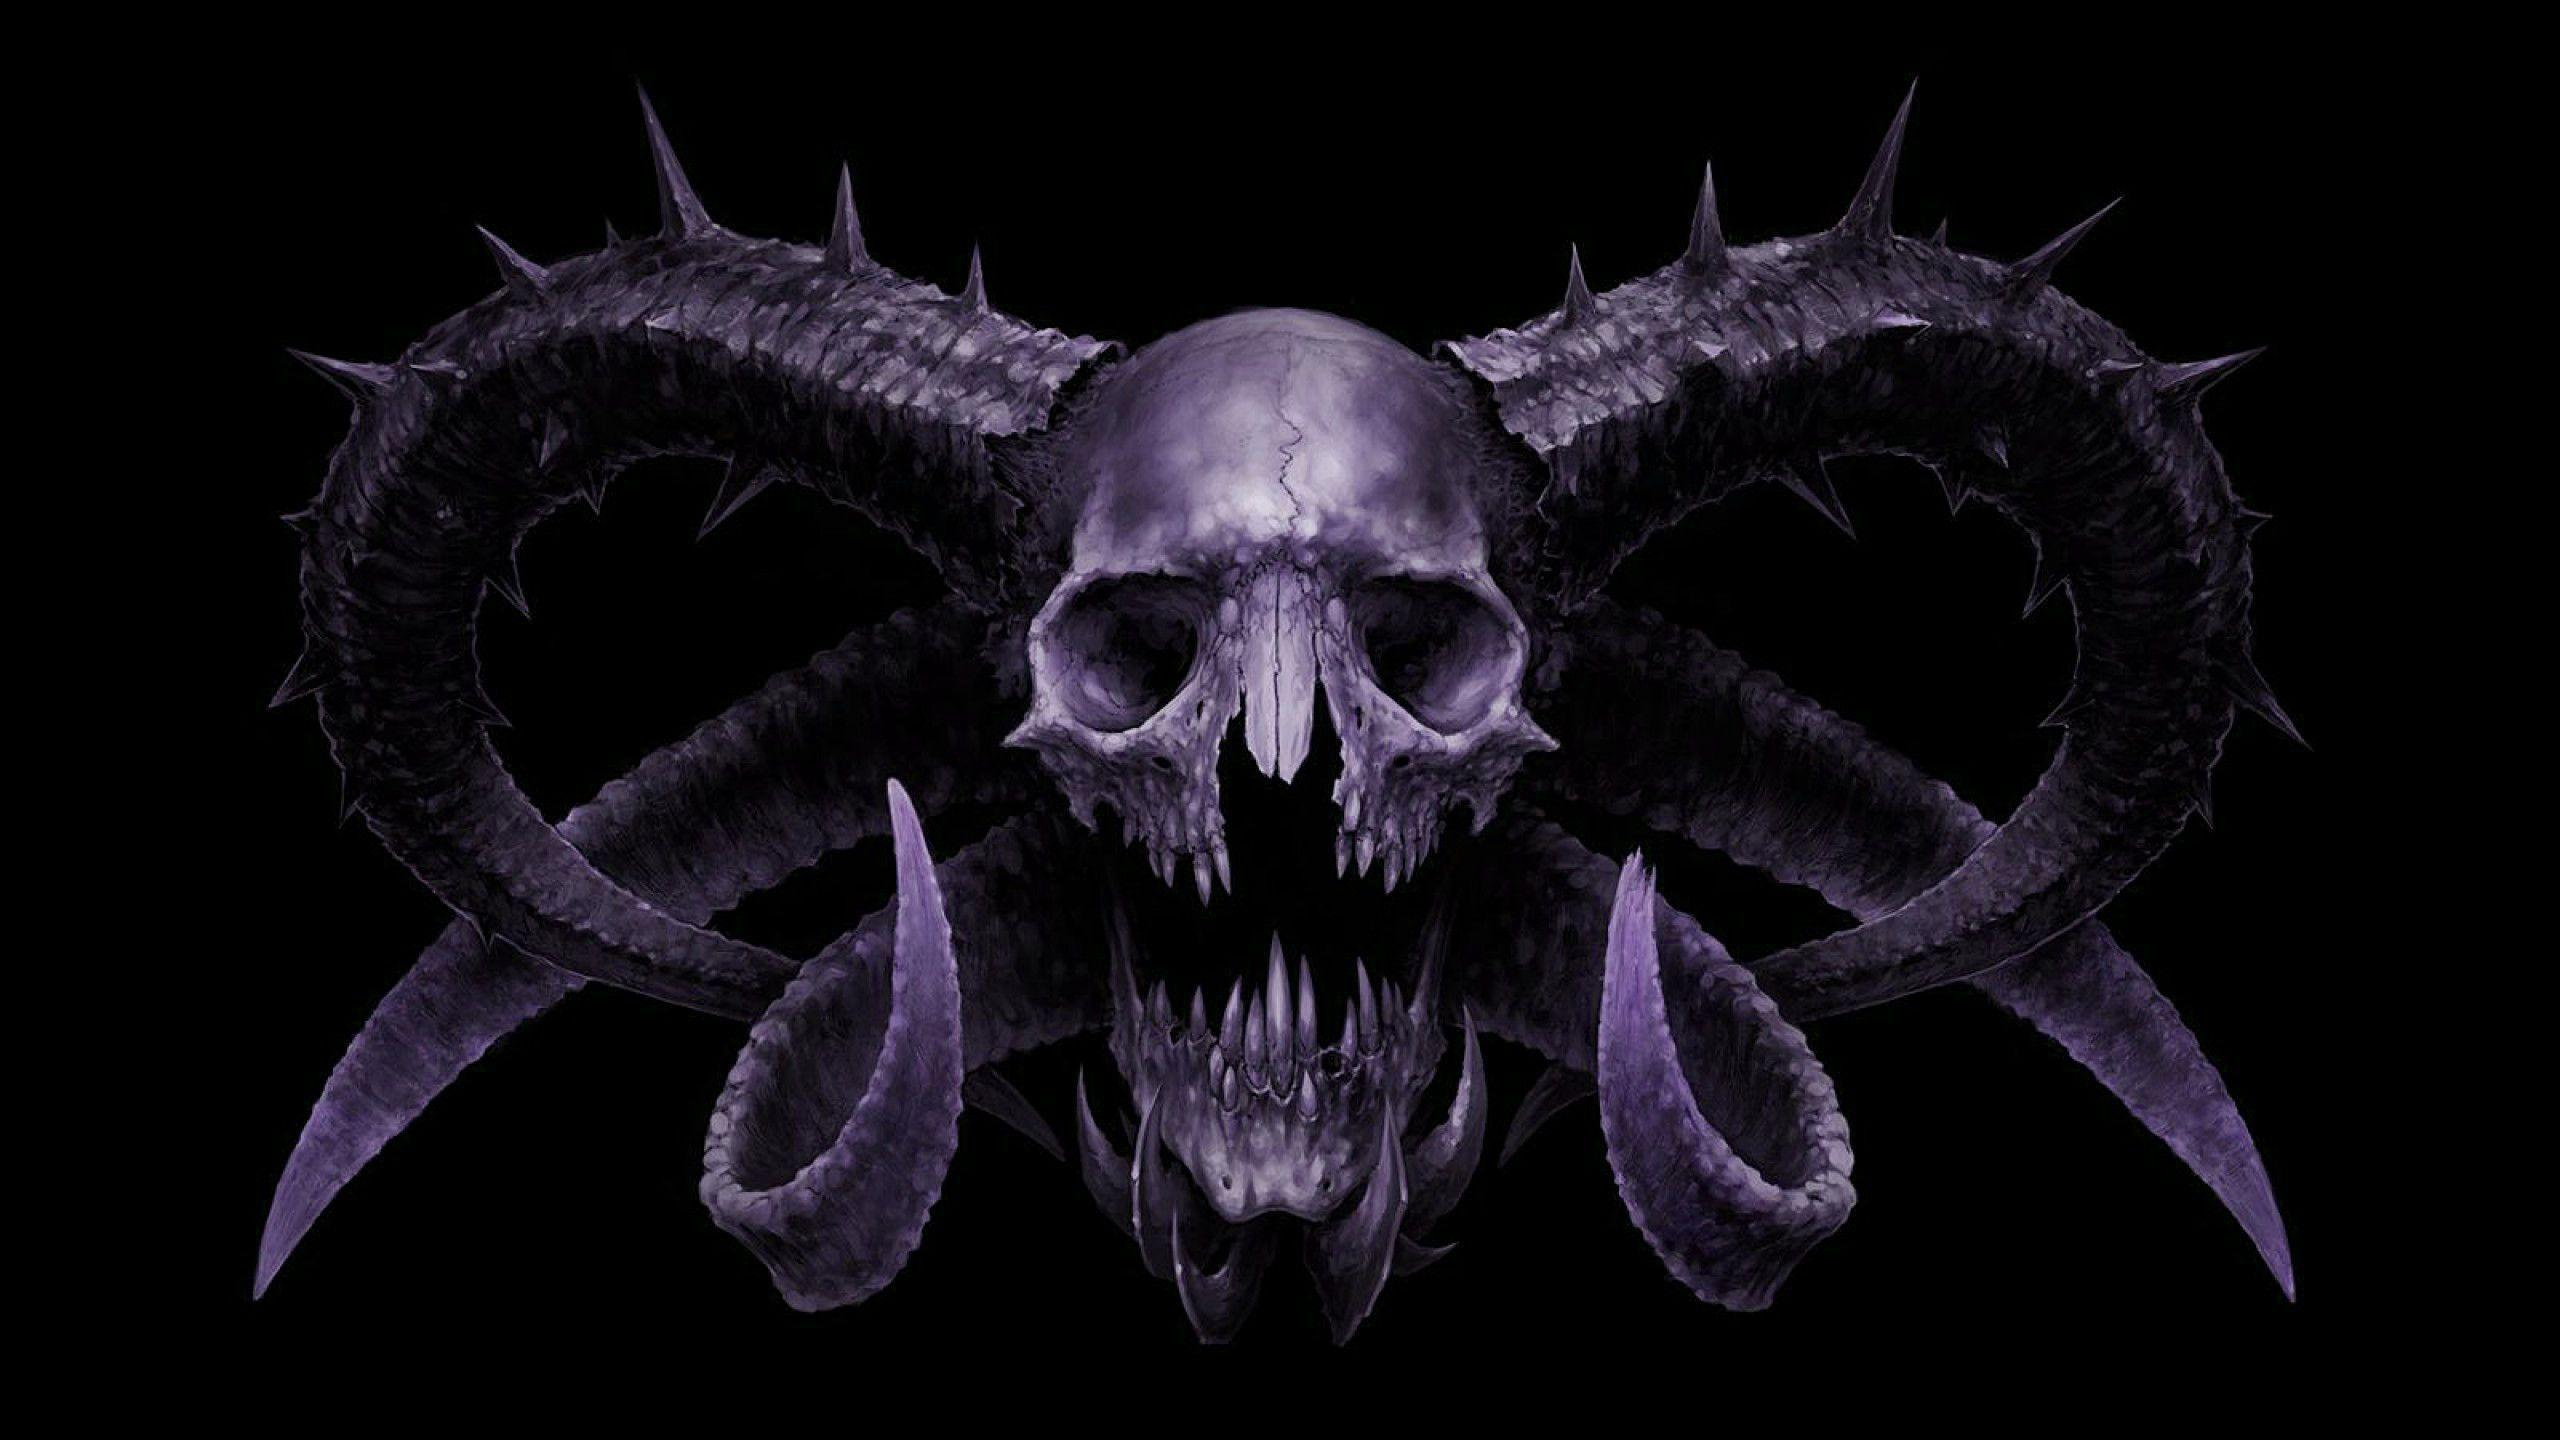 skull wallpaper wallpapers hd - photo #9